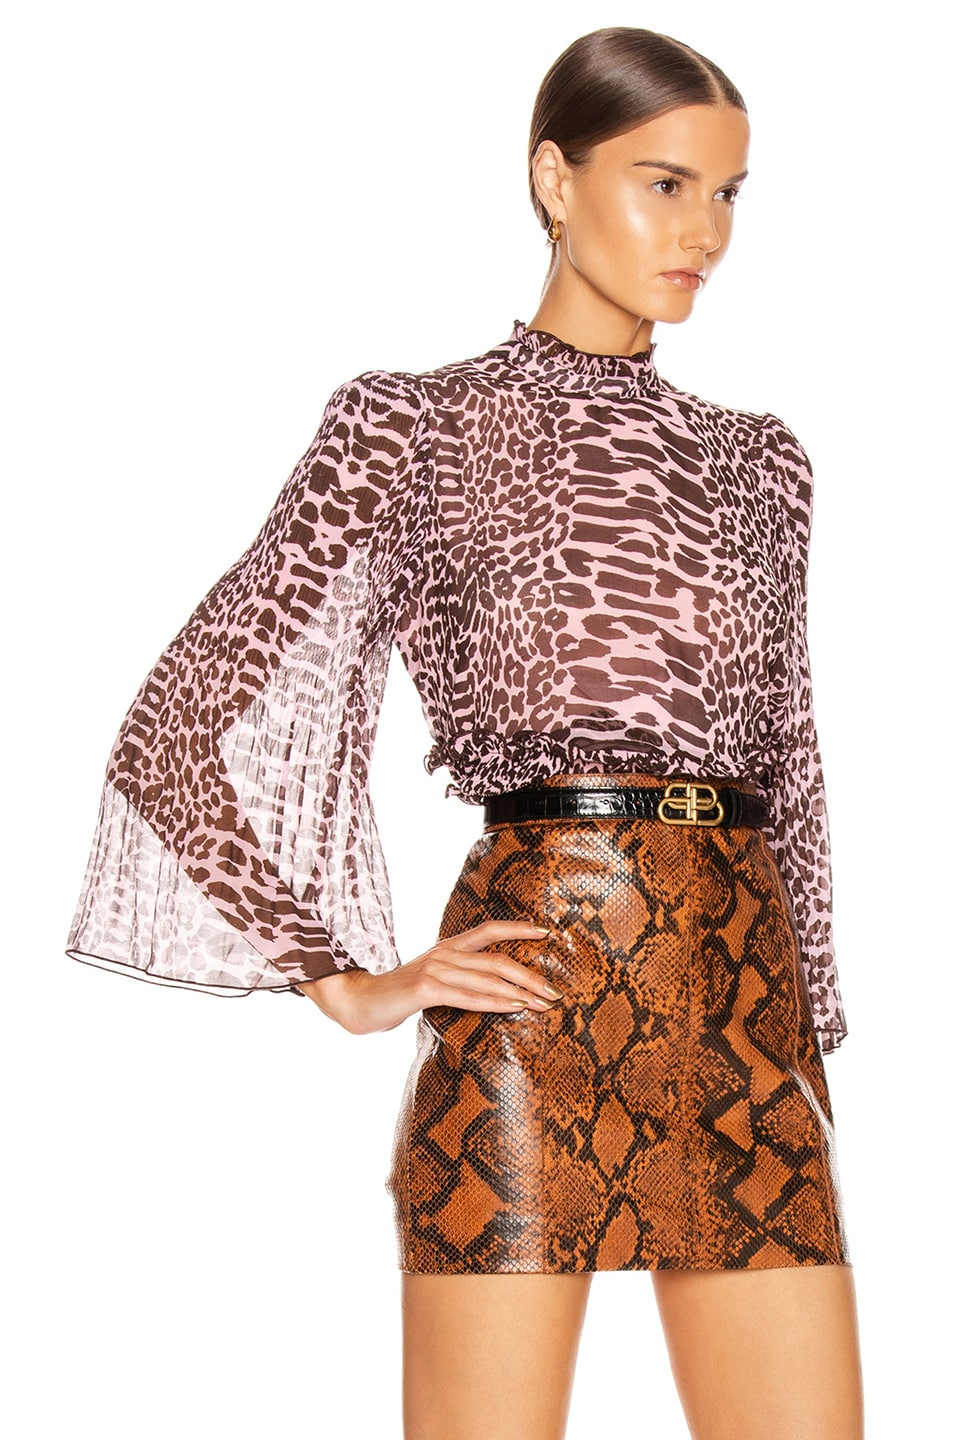 Image 3 of Ganni Pleated Georgette Top in Candy Pink and Dark Brown Leopard